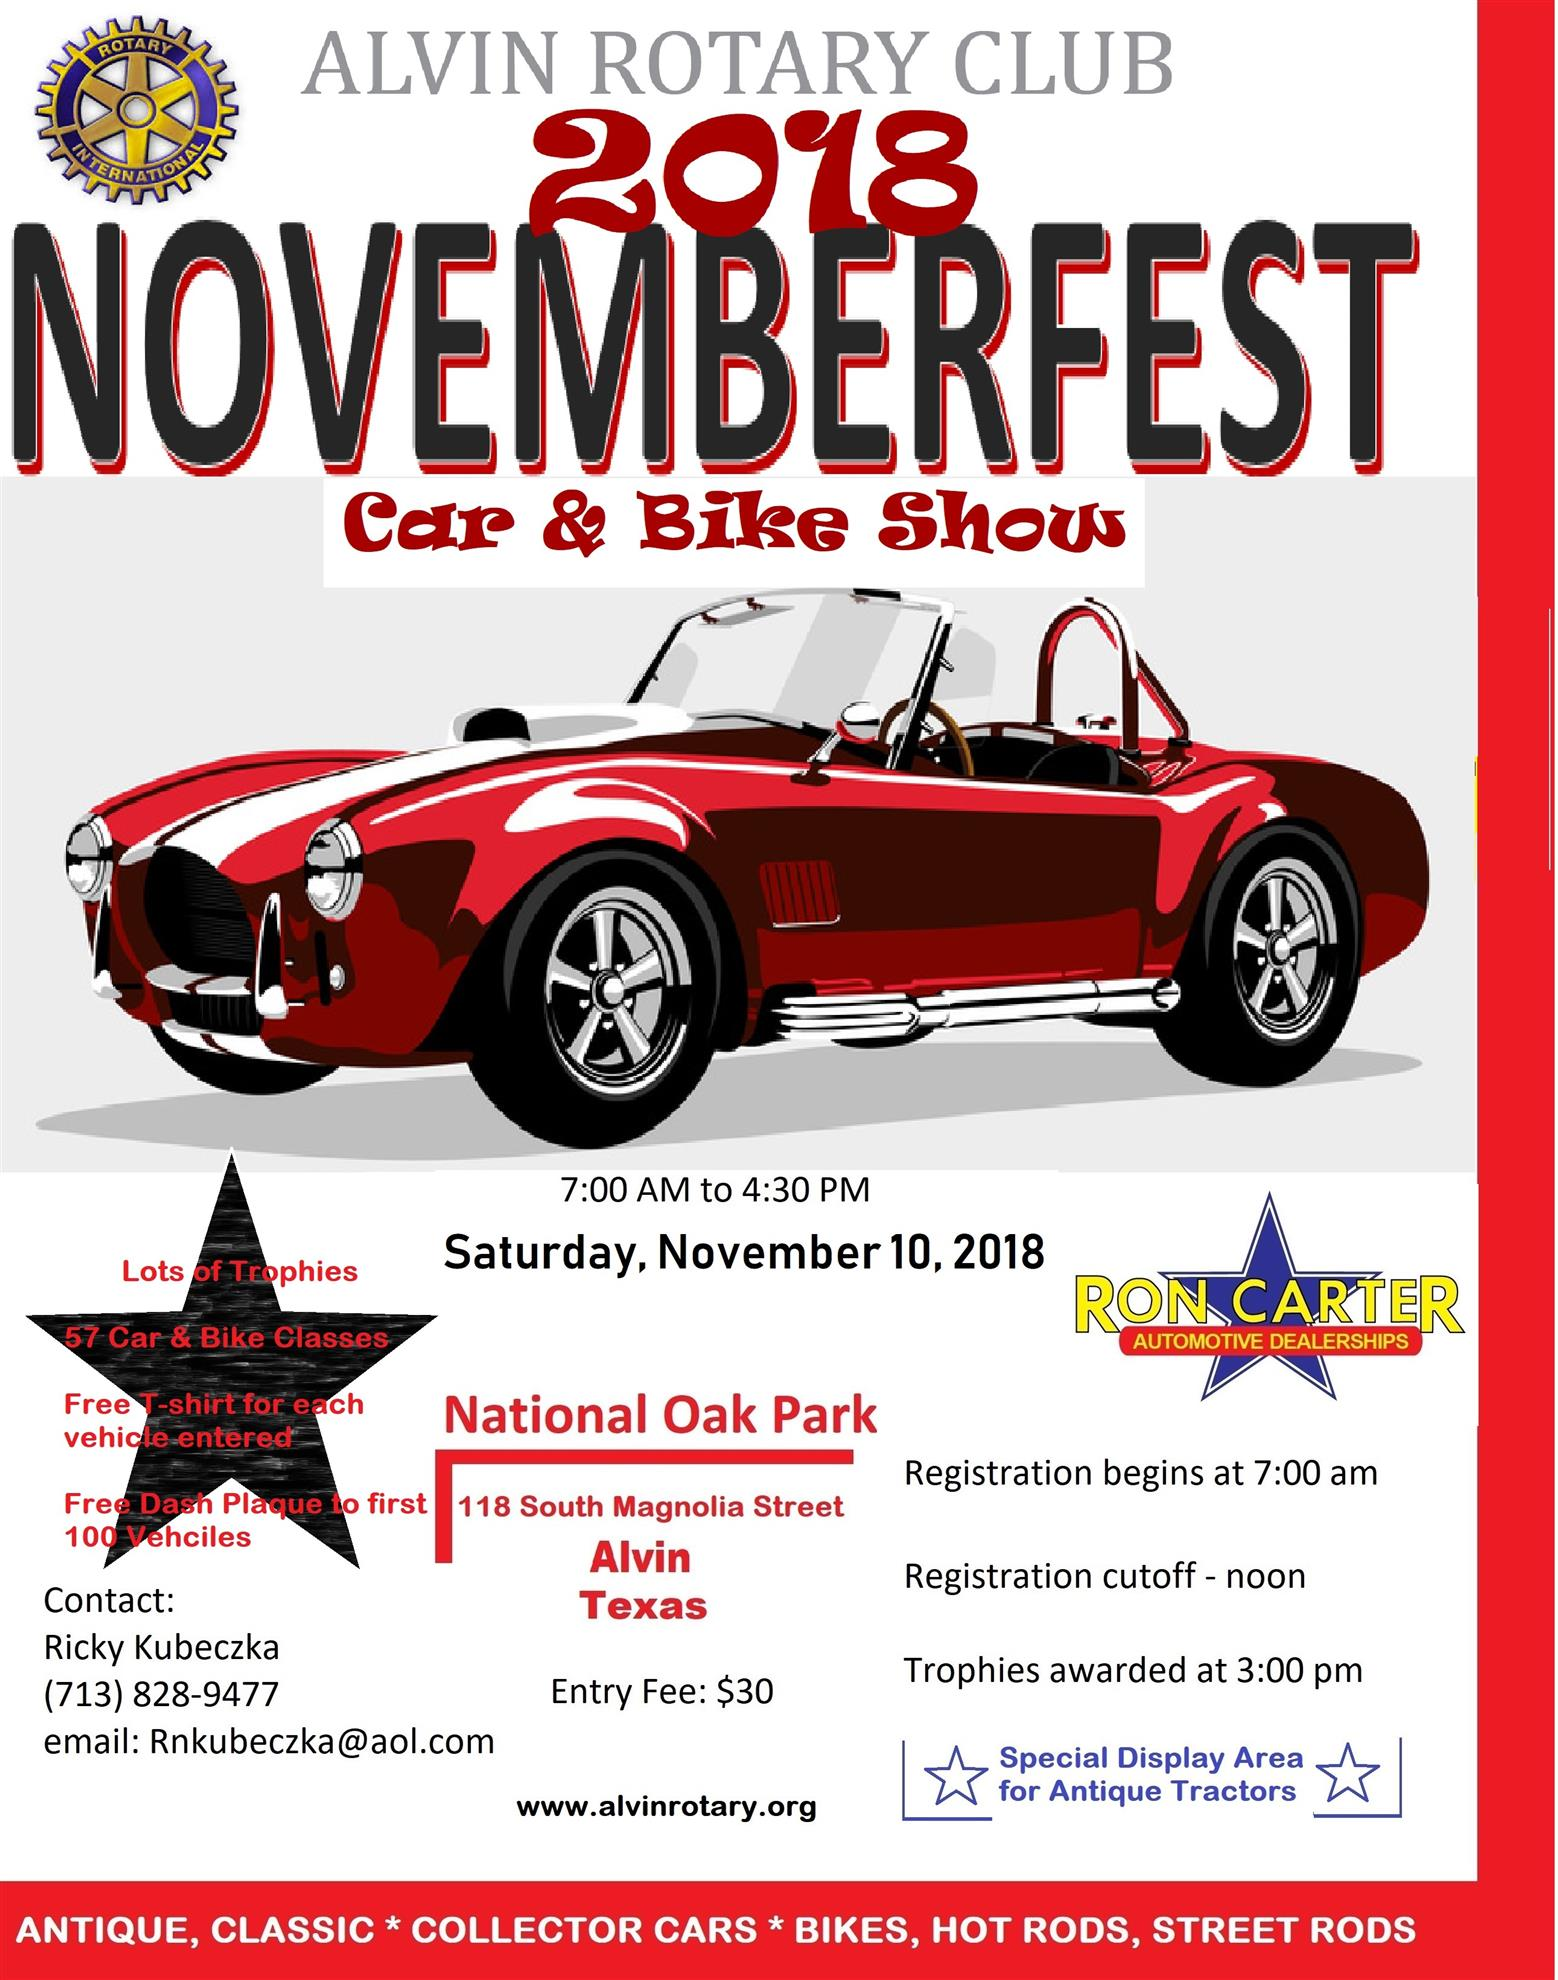 Novemberfest Rotary Club Of Alvin - Car show vendor ideas